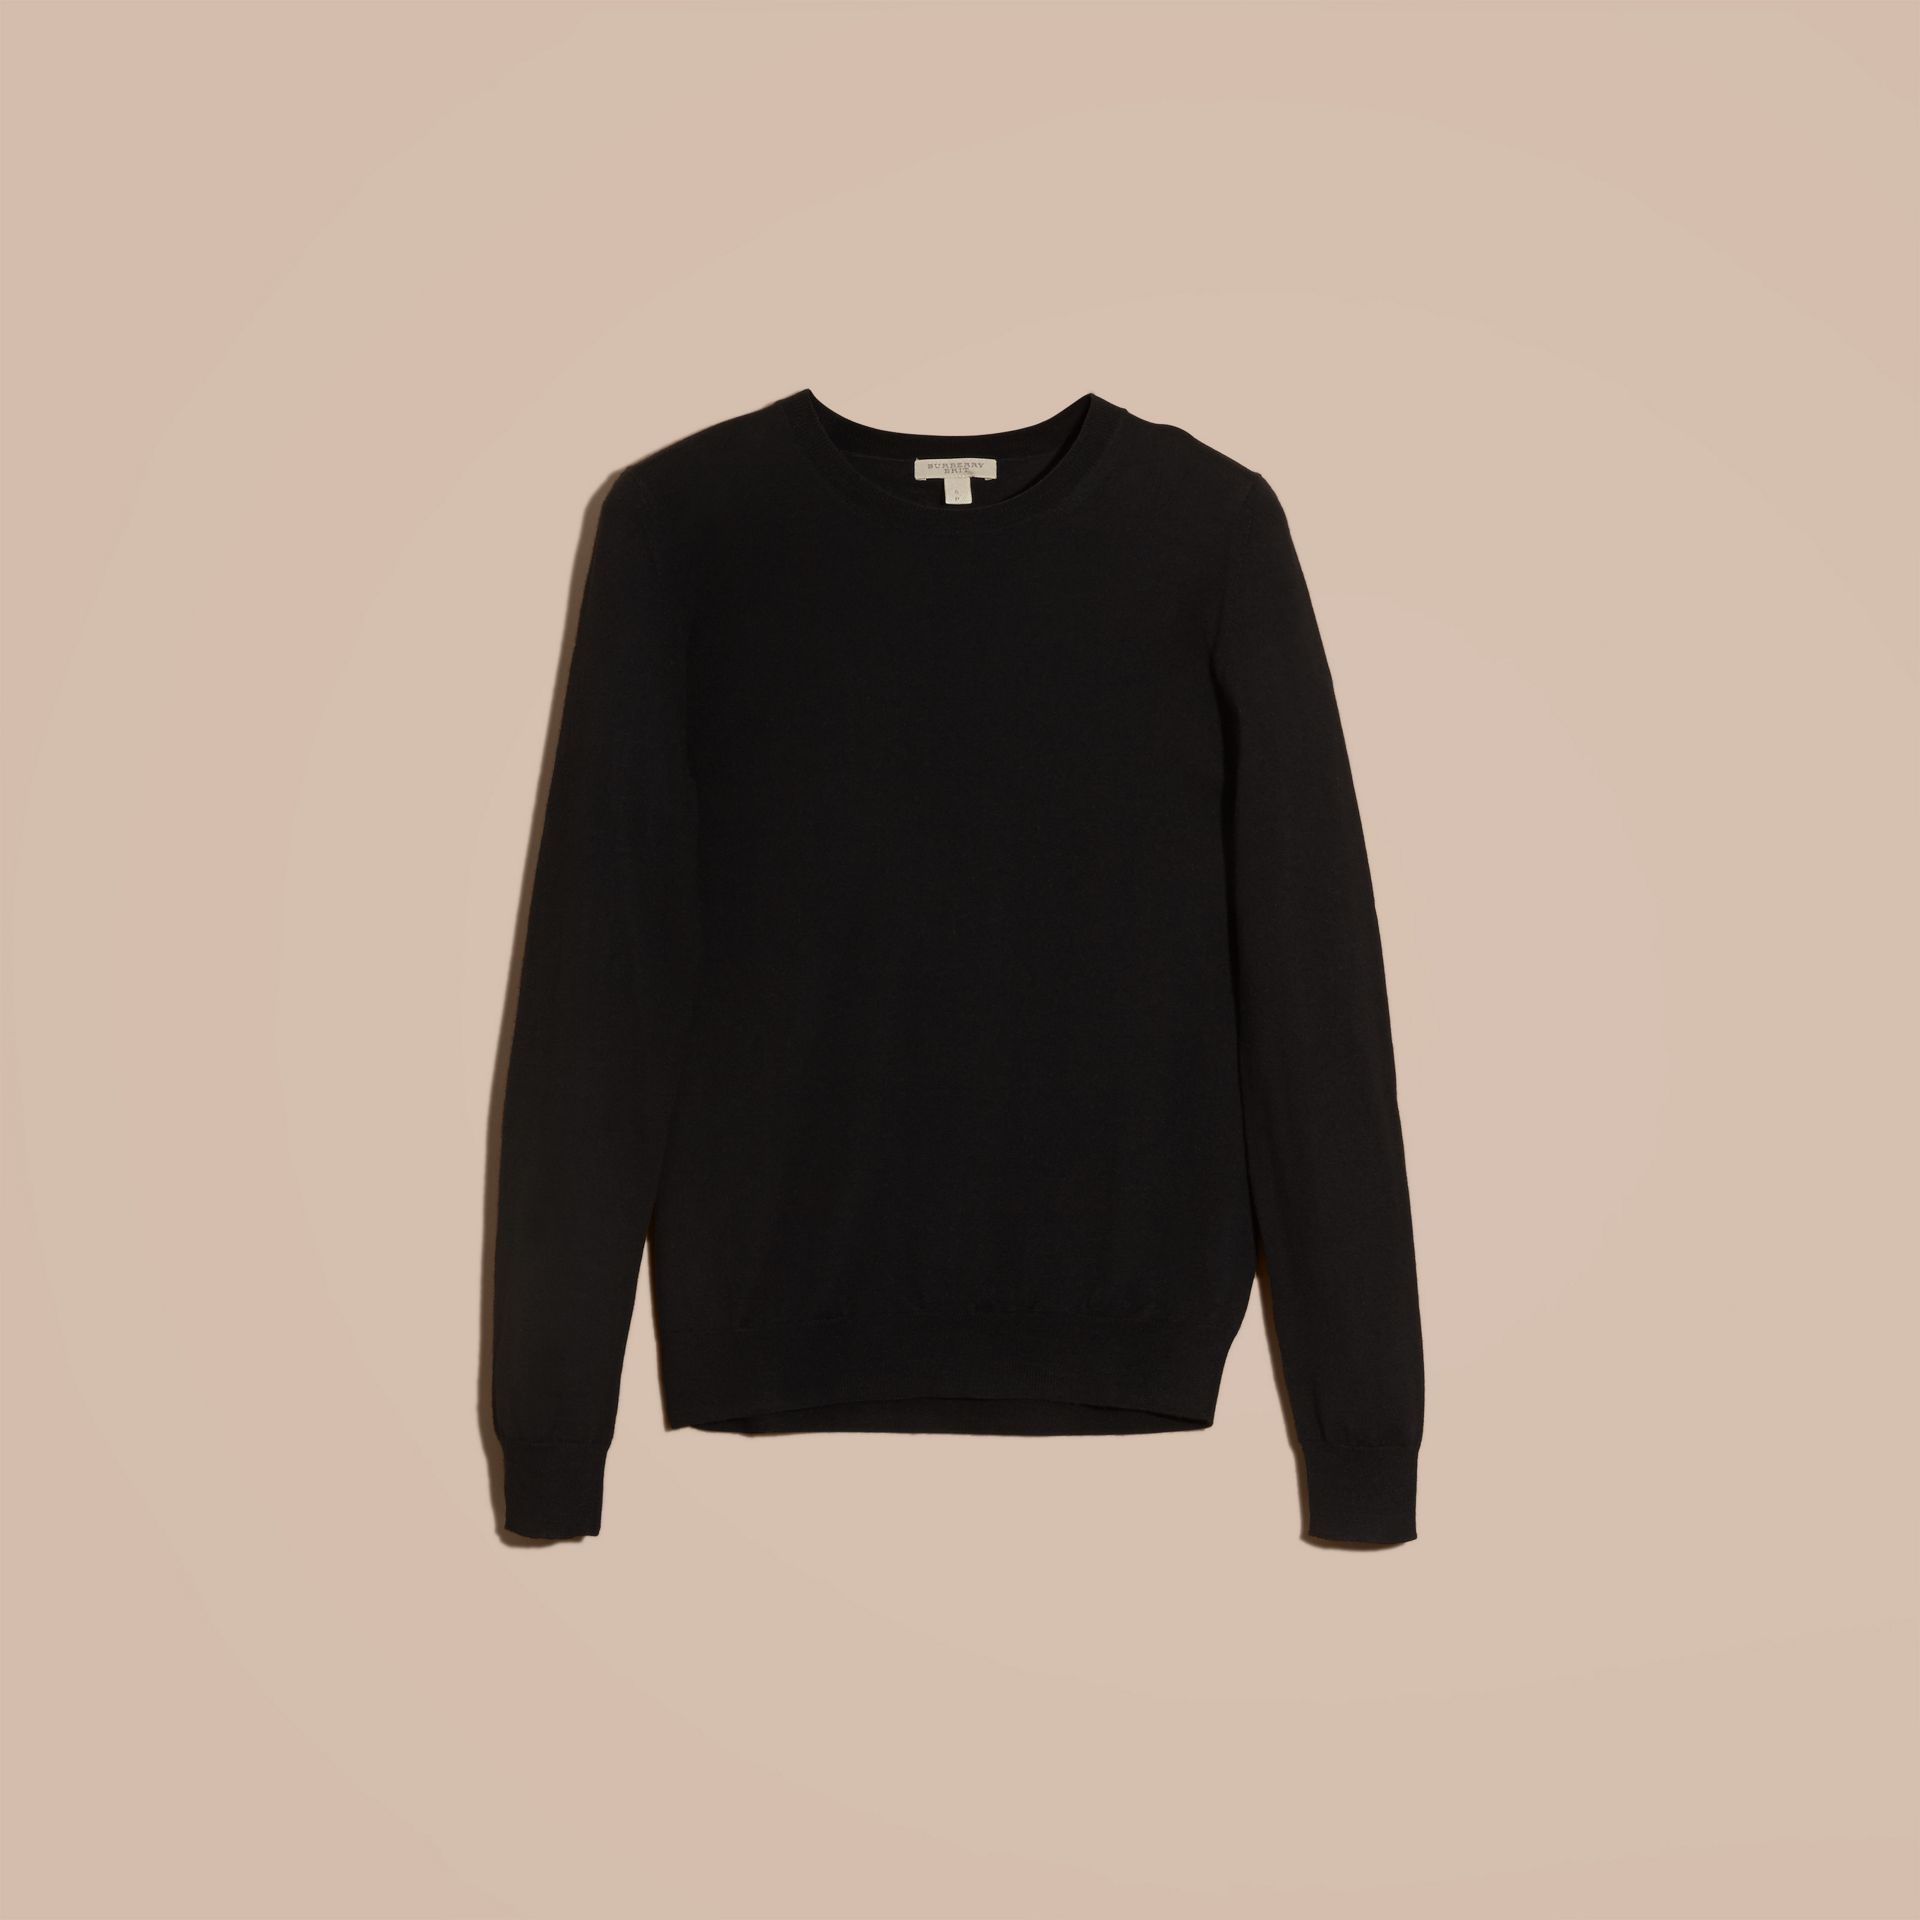 Check Detail Merino Wool Crew Neck Sweater in Black - Women | Burberry - gallery image 4